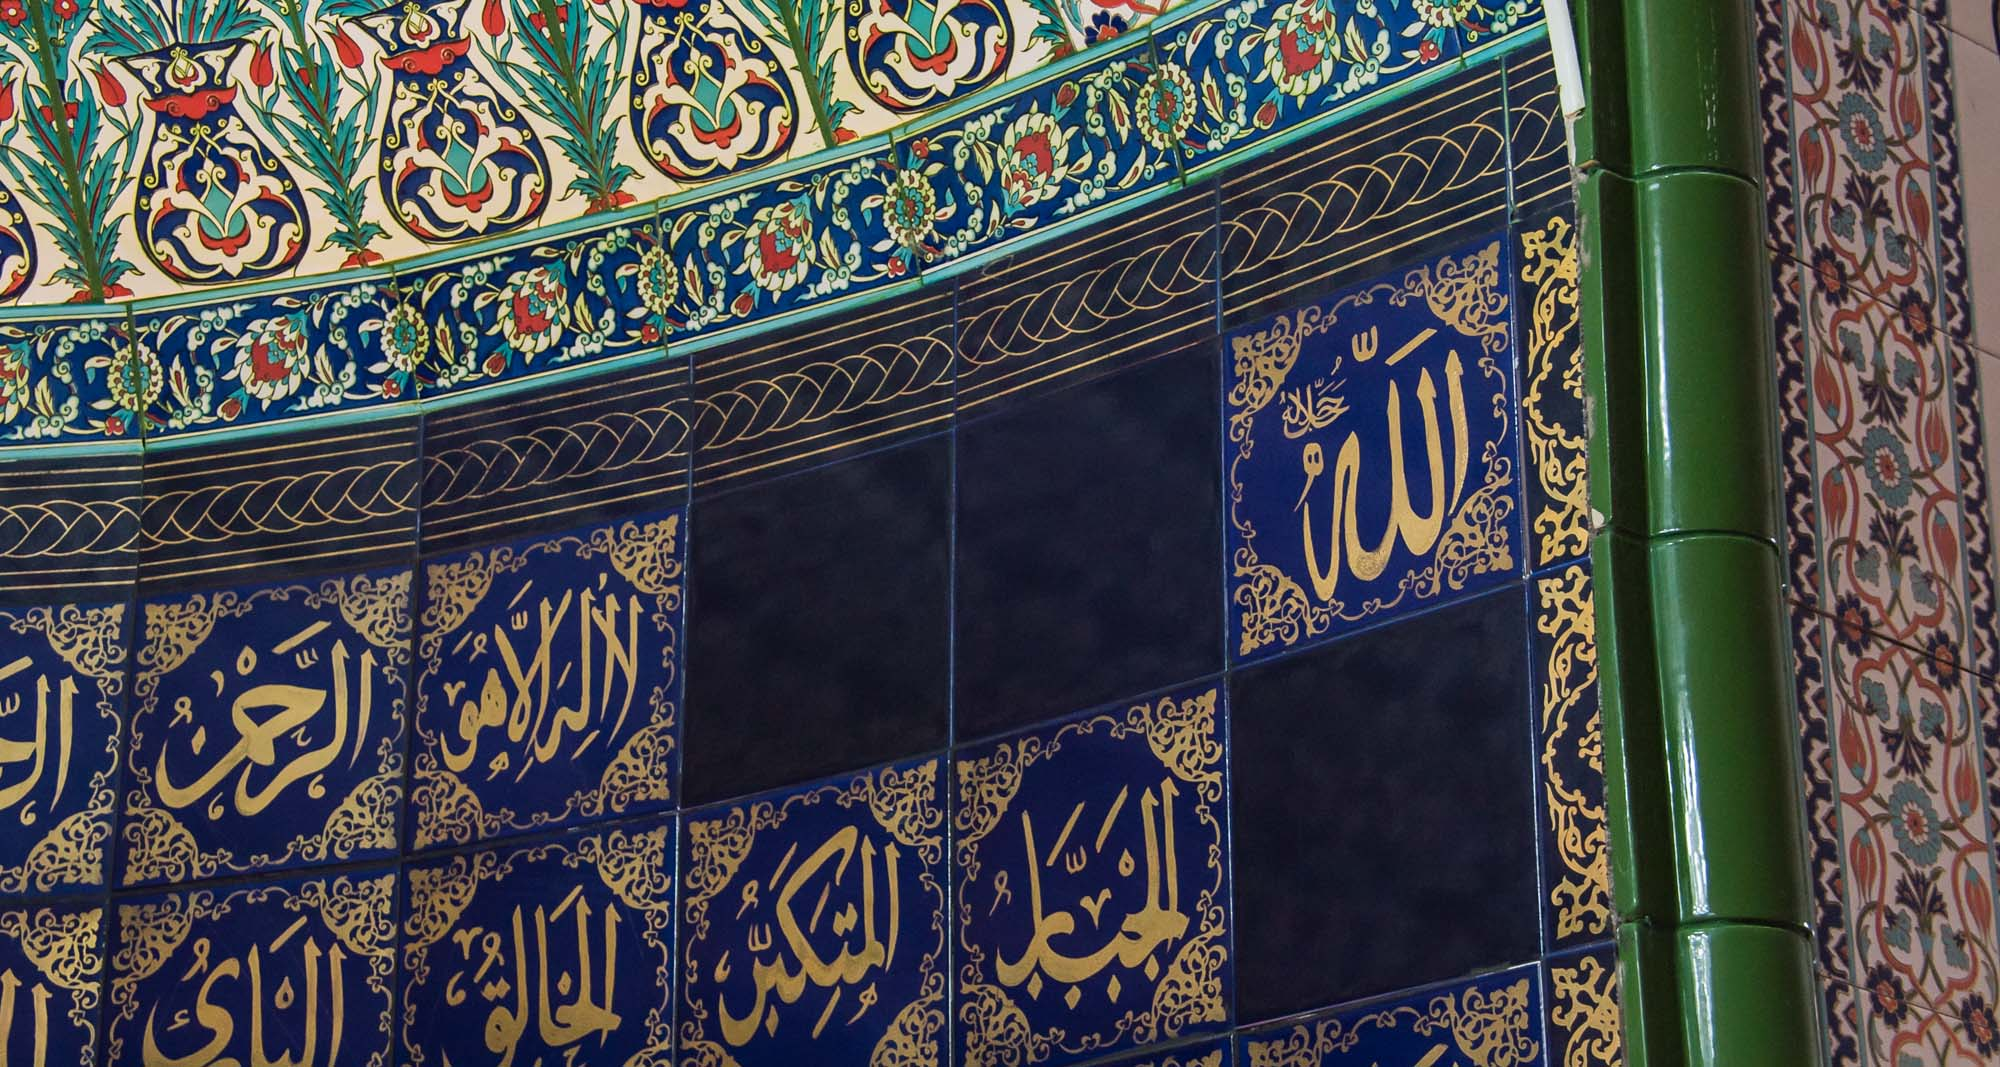 Painted tiles in the mihrab at Central Mosque. The mihrab is the semi-circular niche in a mosque that indicates the direction of Mecca -